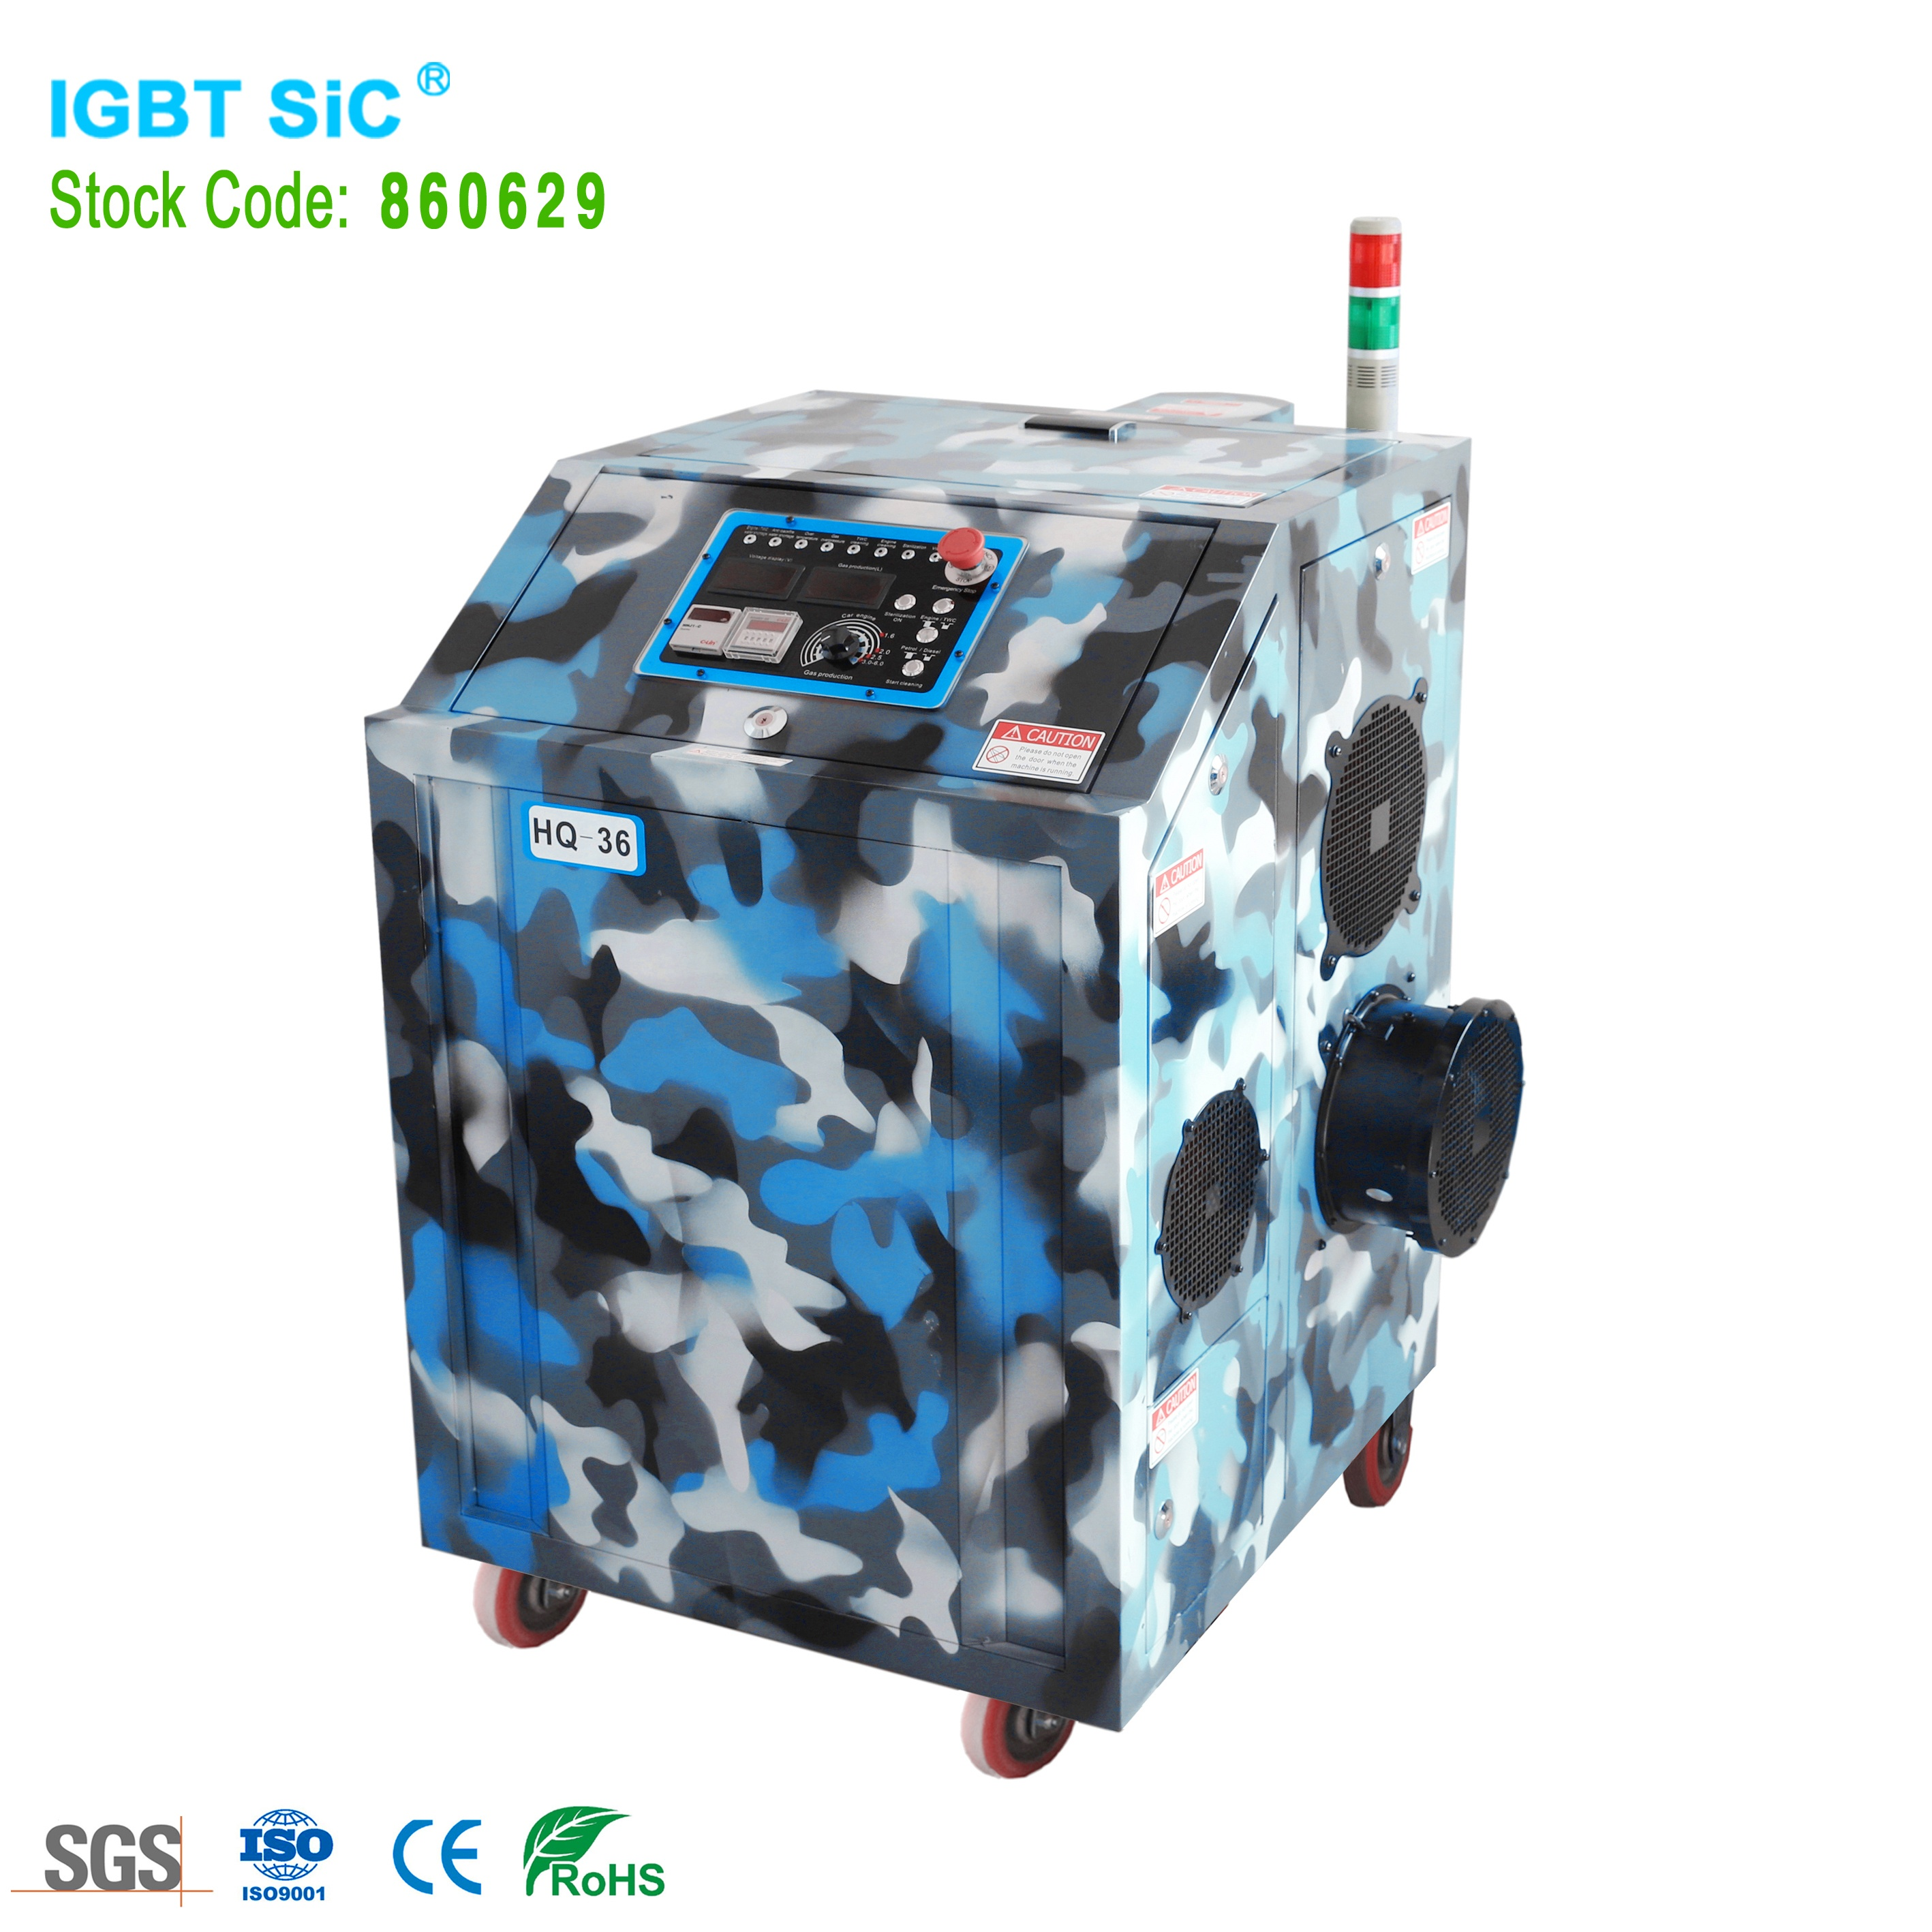 Igbtsic Car Care Equipment Dry Cell Hydrogen Generator Kit Hq 12 Hq 36 Ac220v 50 60hz Buy Dry Cell Hydrogen Generator Kit Carbon Cleaner Malaysia Hho Heat Generator Product On Alibaba Com